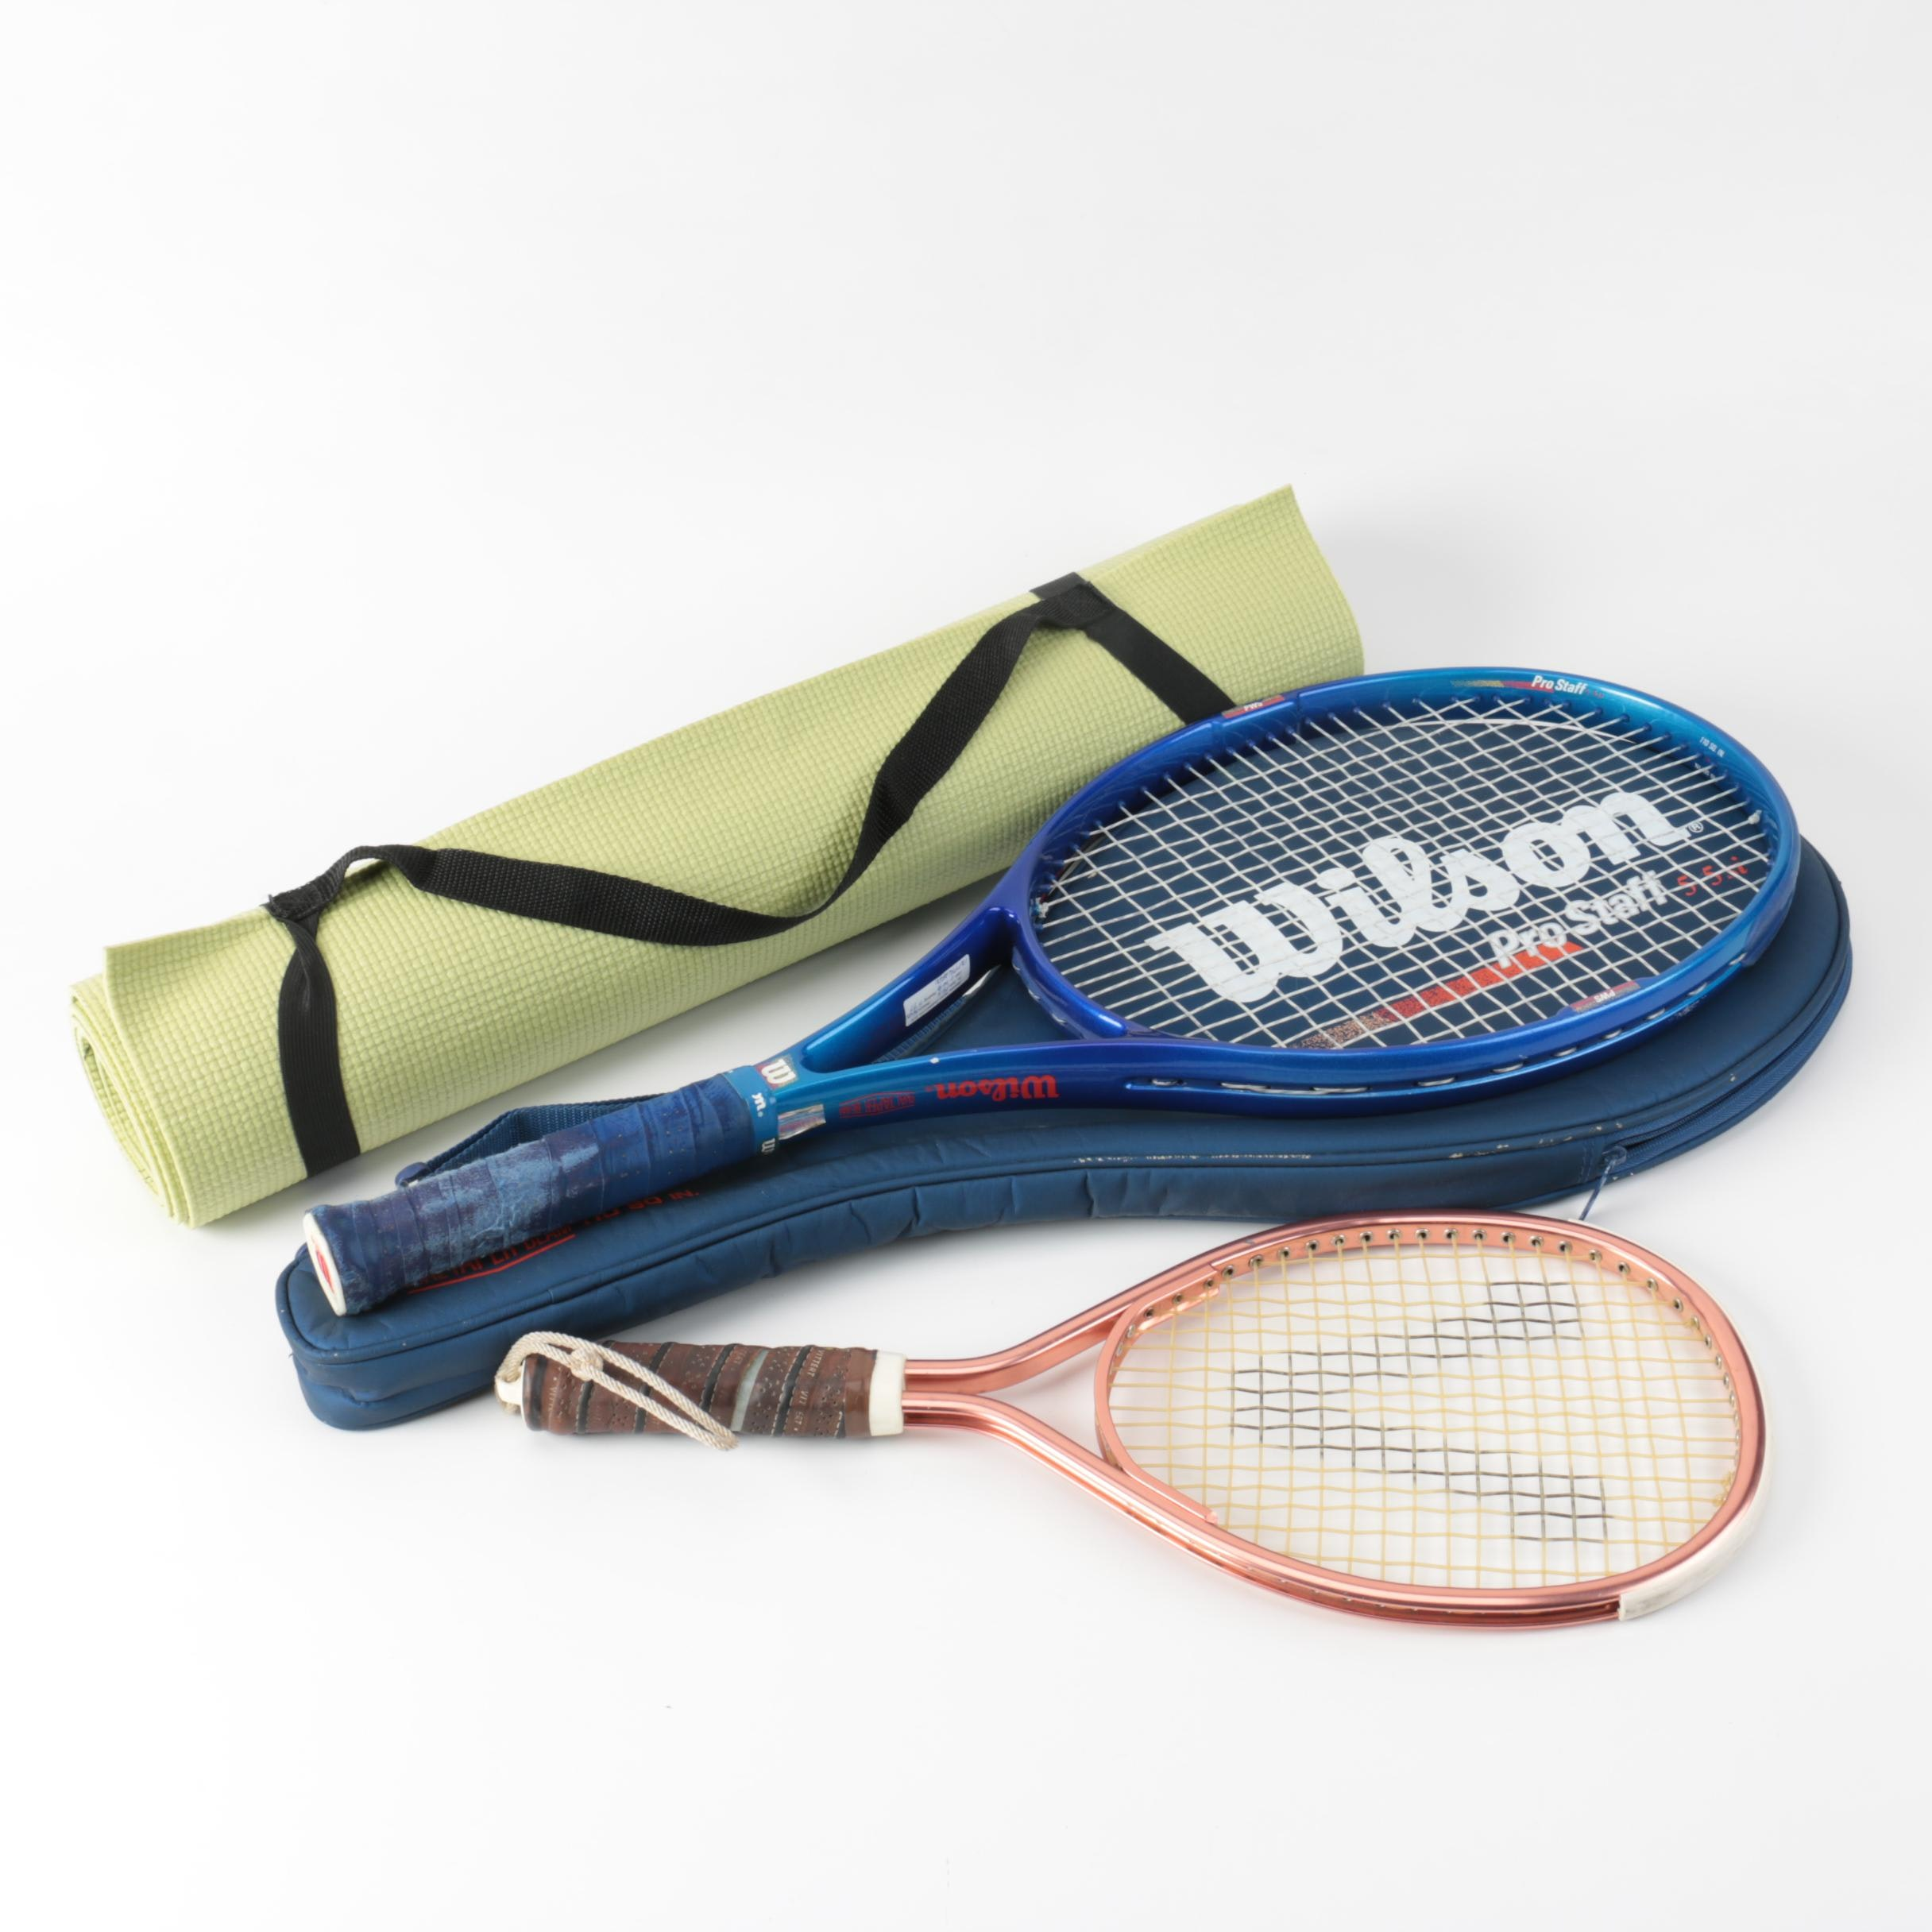 Yoga Mat, Tennis Racket And Aluminum Racquetball Racket